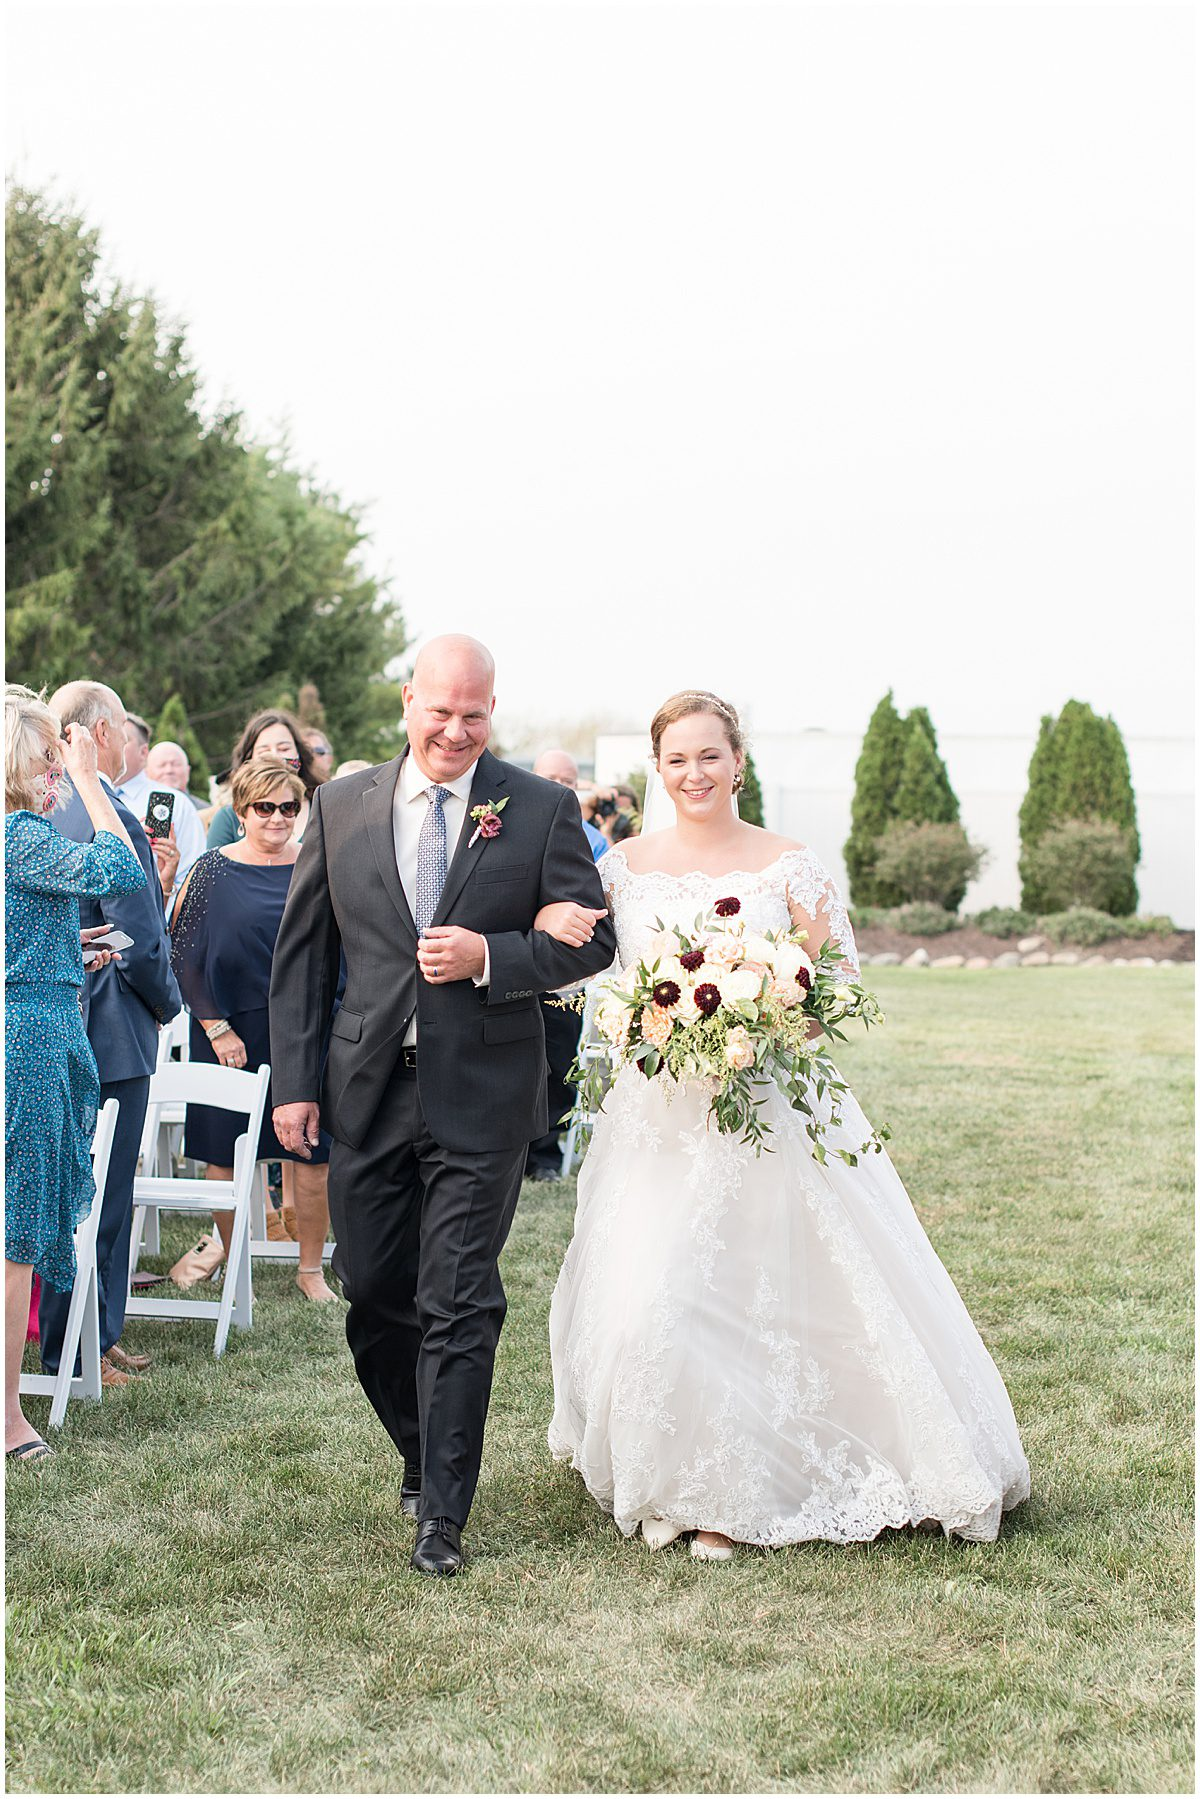 Ceremony photos at Meadow Springs Manor wedding in Francesville, Indiana